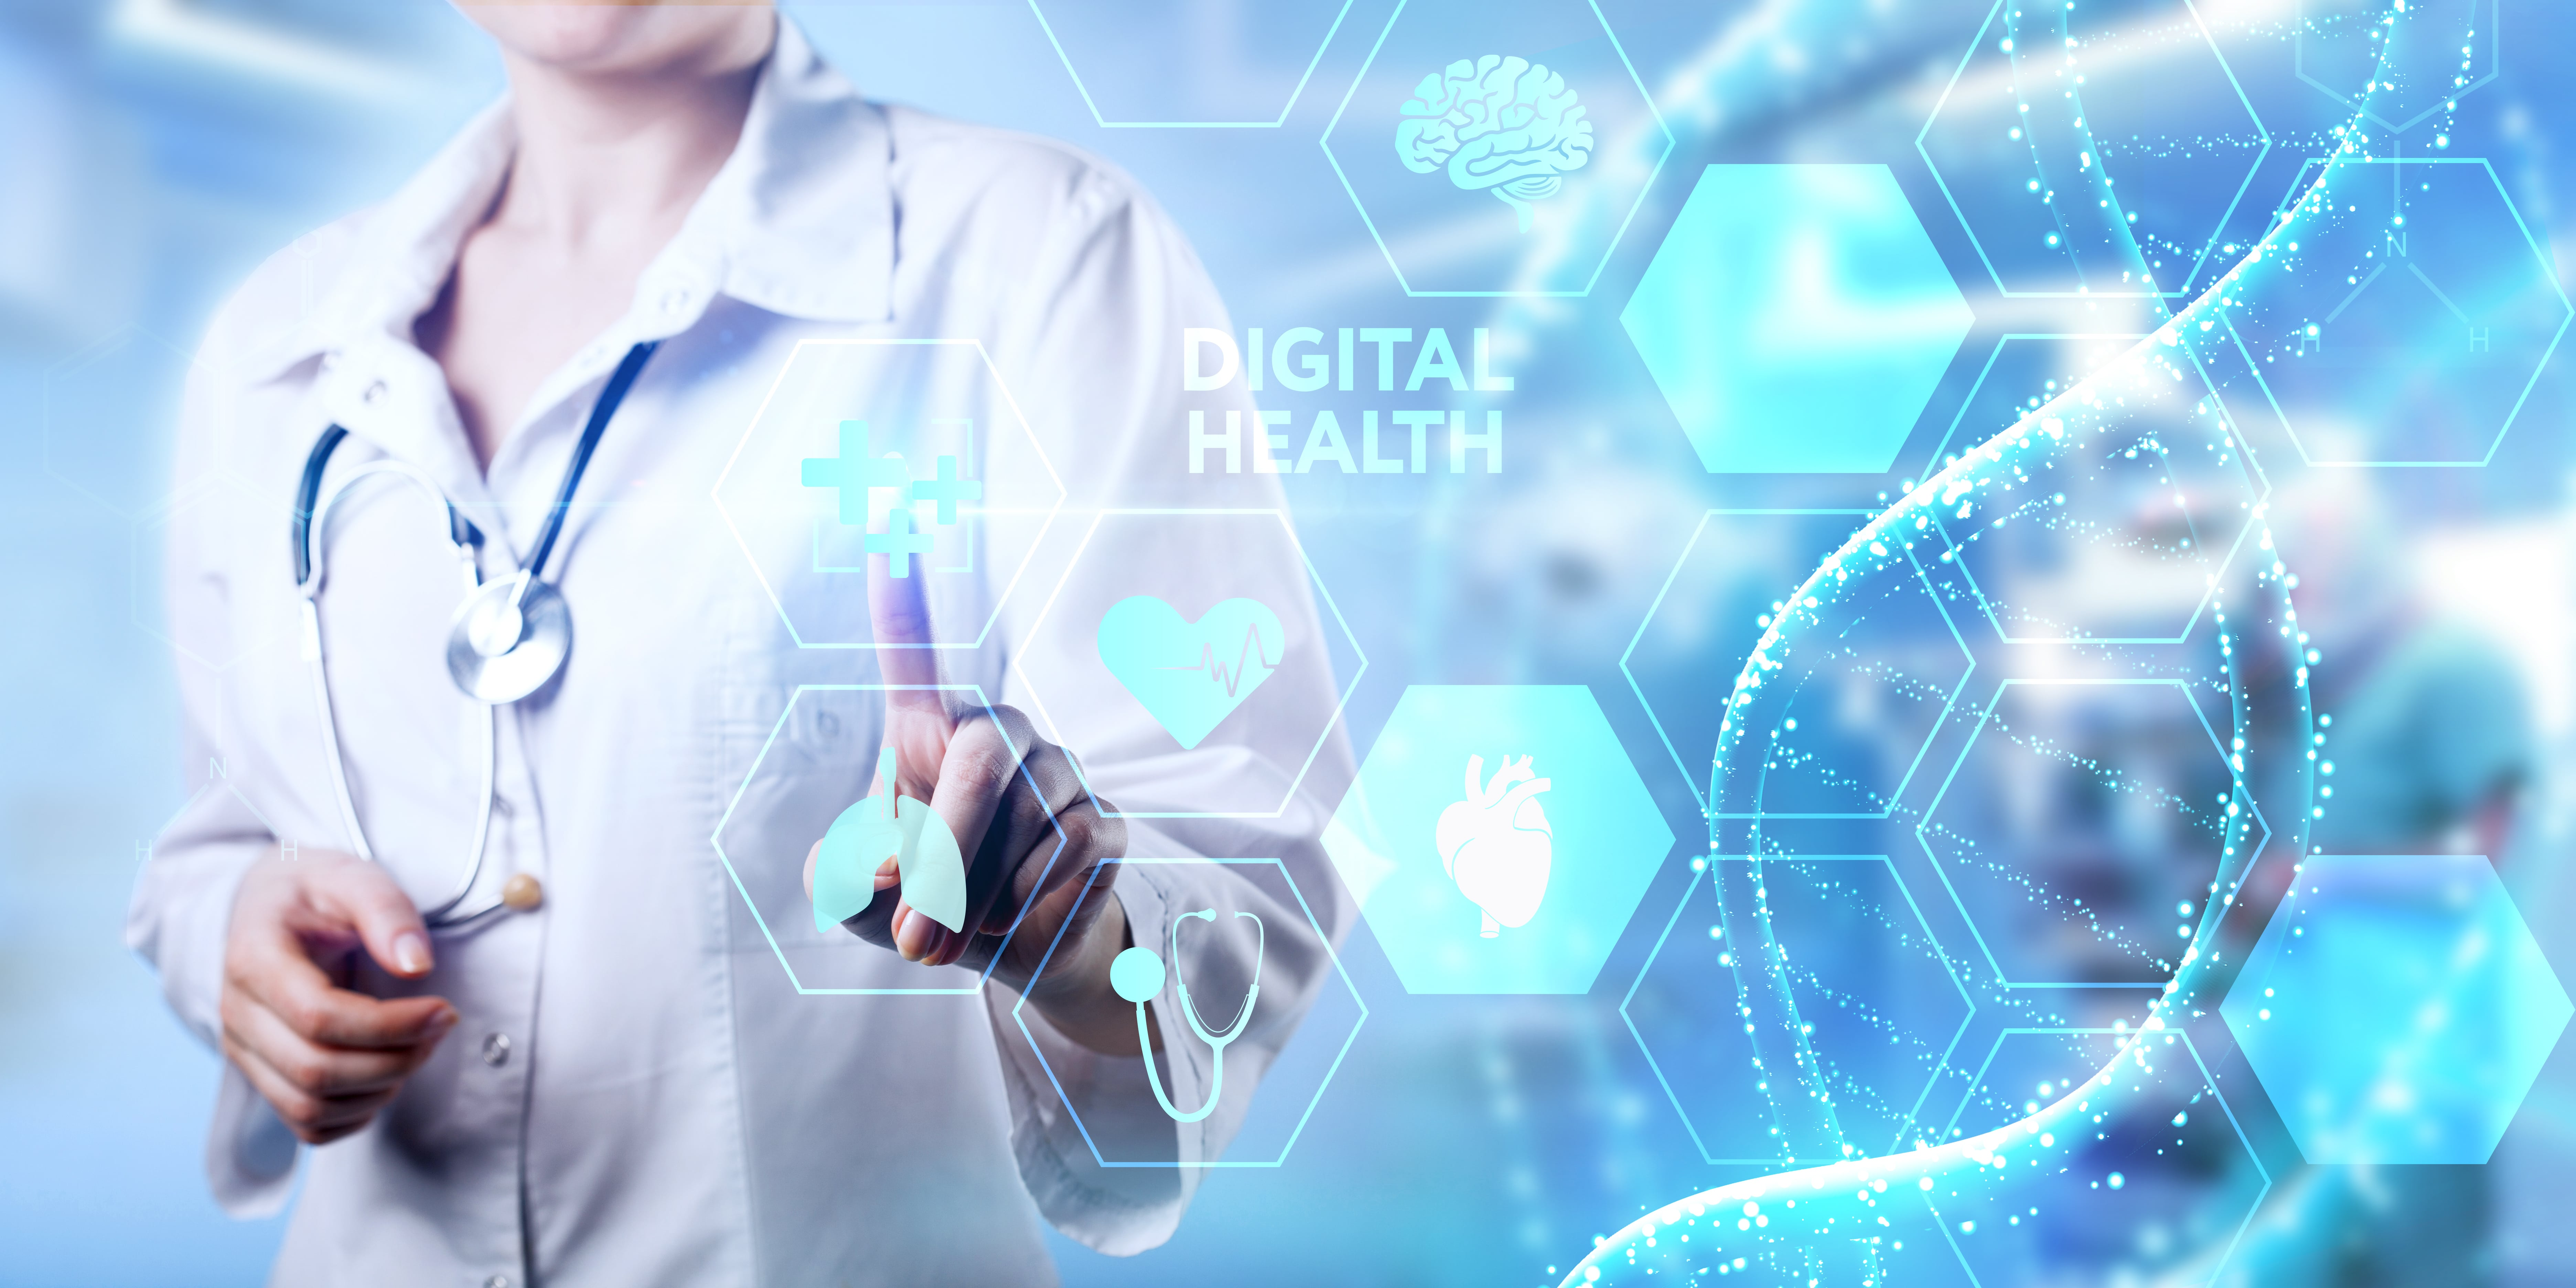 doctor in lab coat with digital health illustration